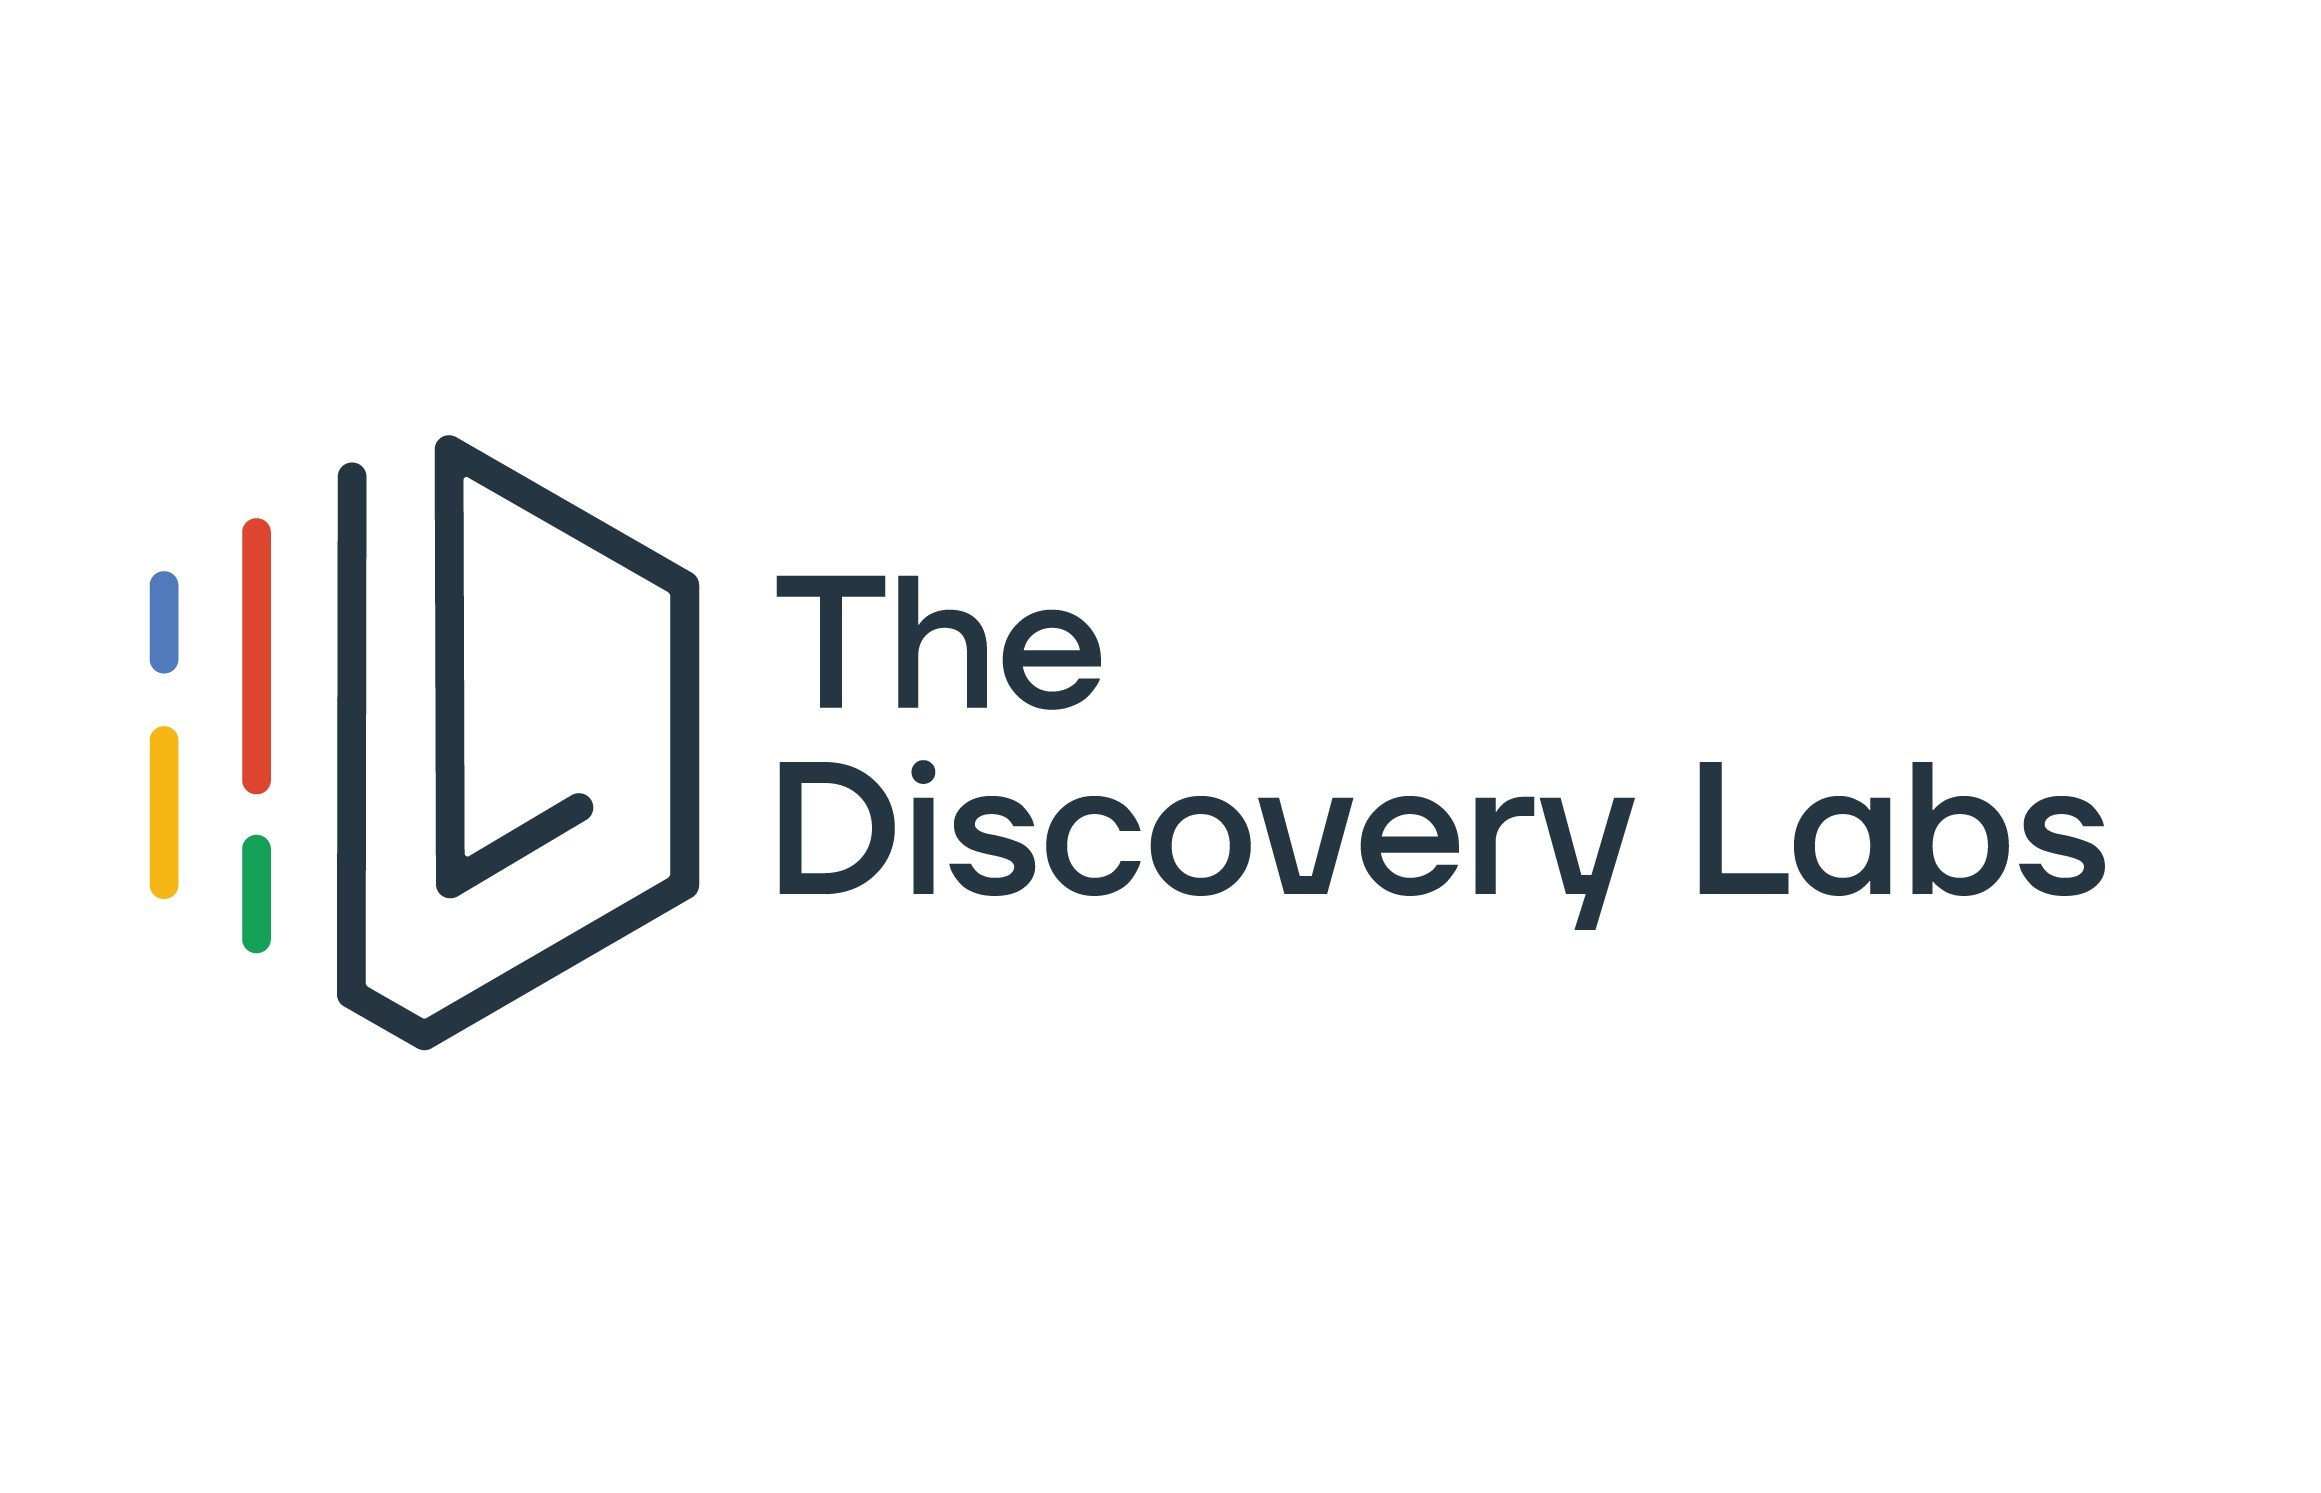 The Discover Labs logo